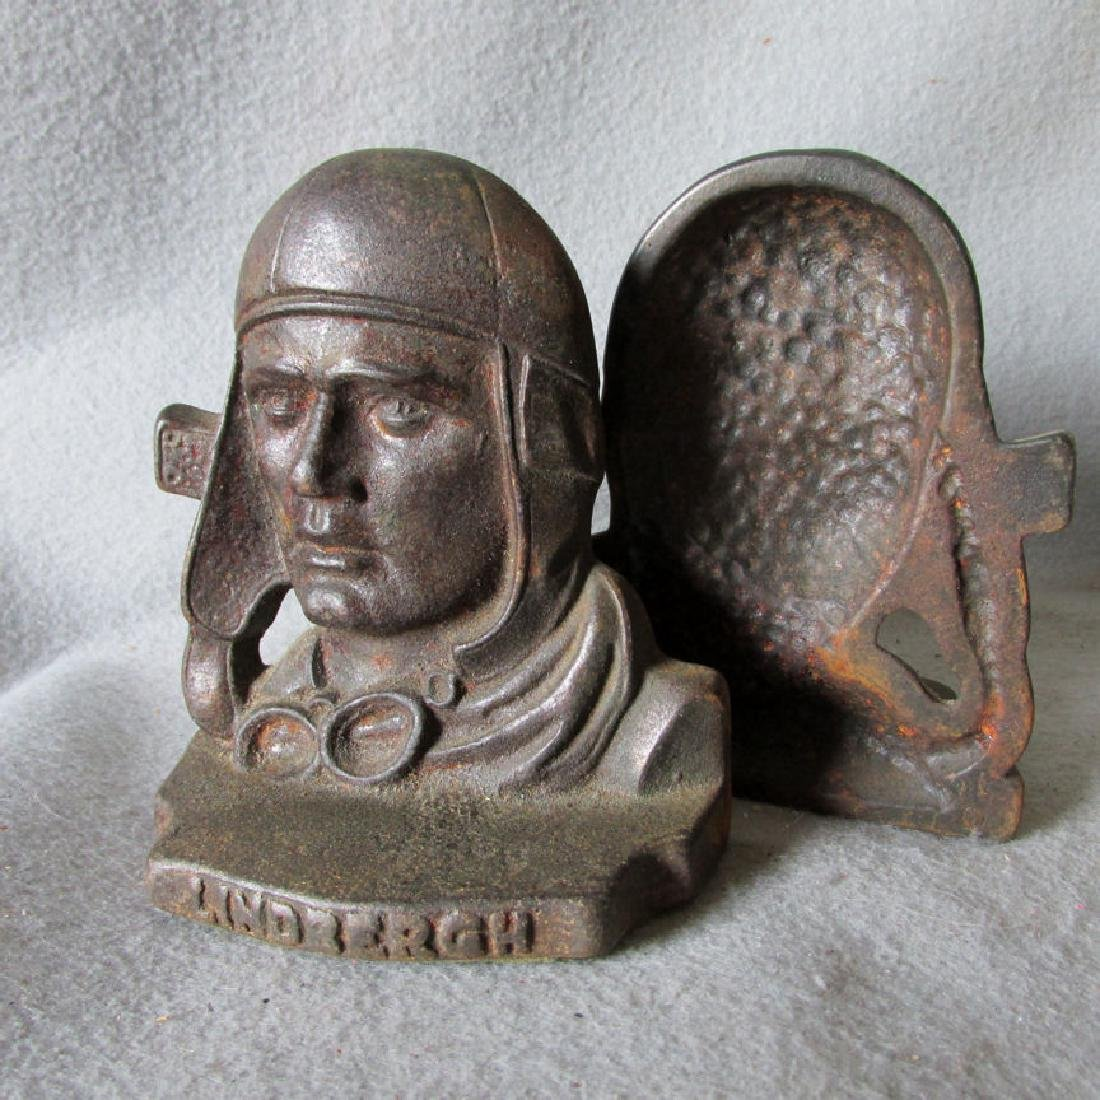 Charles Lindbergh Bookends, Airplane Commemorative - 2